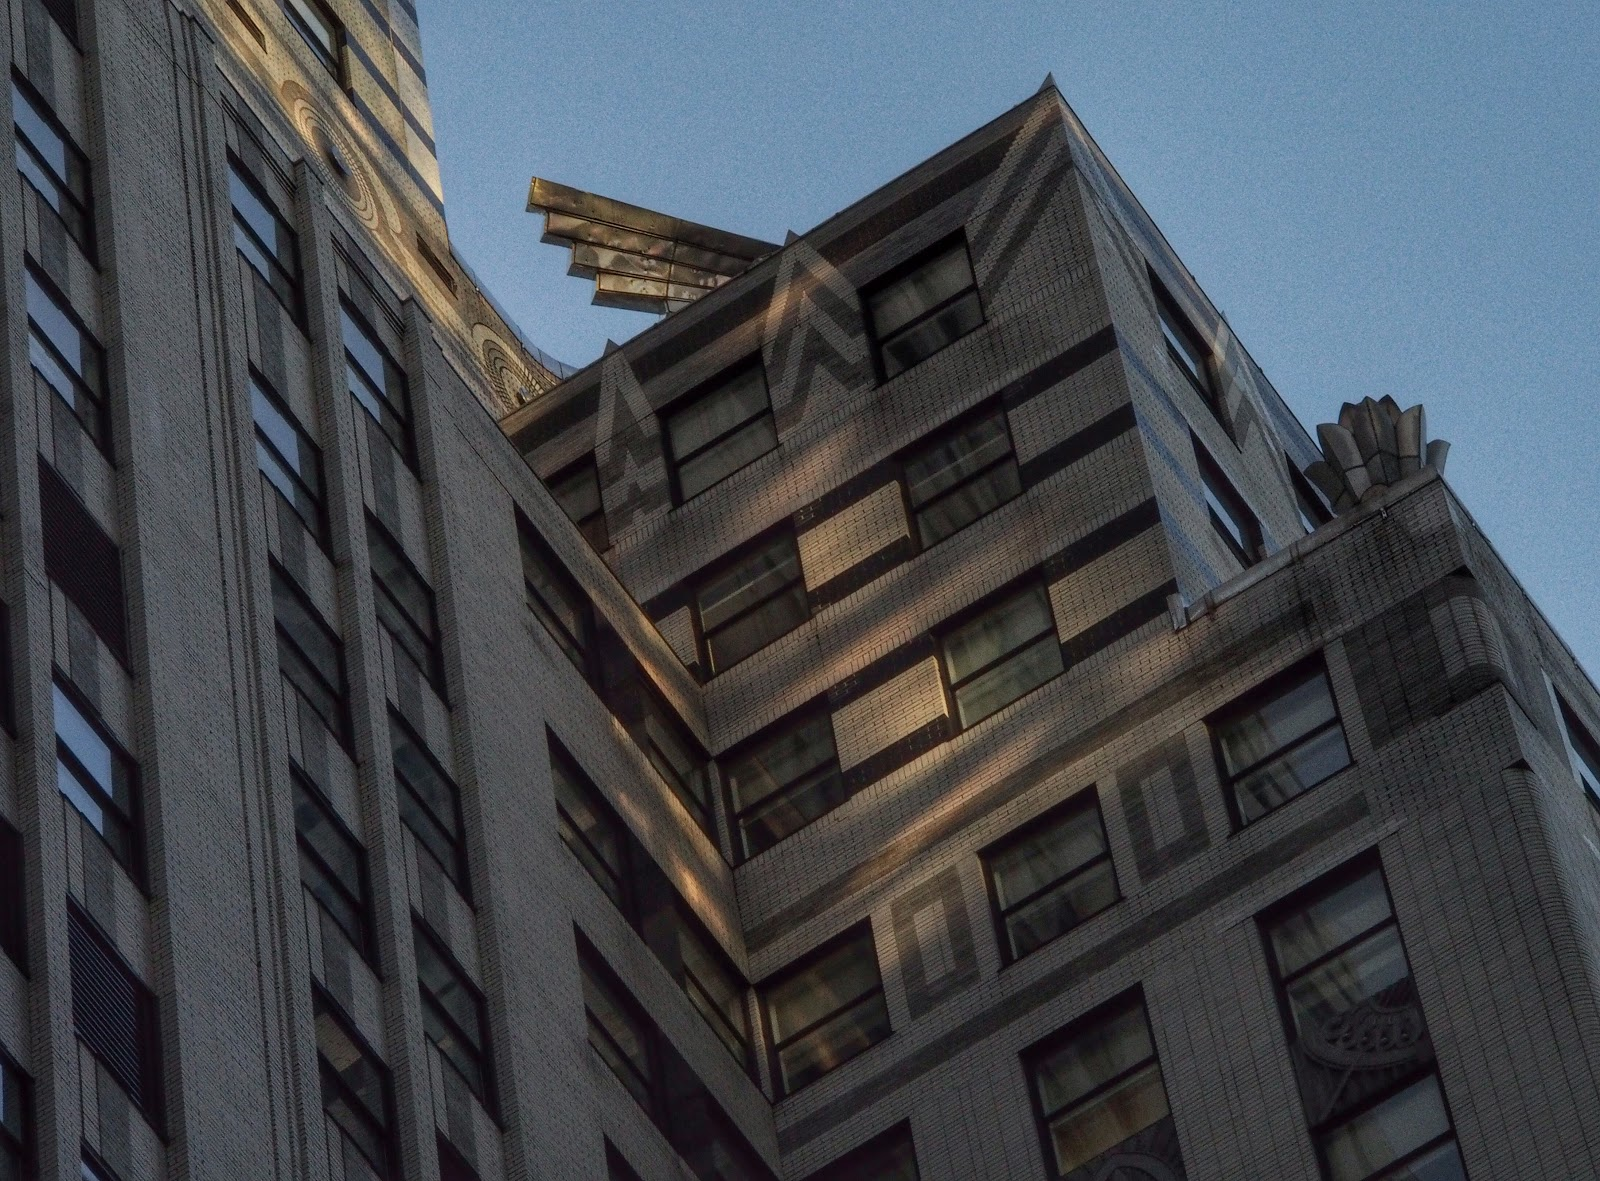 Shadows & Light, #ChryslerBuilding #architecture #artdeco #nyc 2014